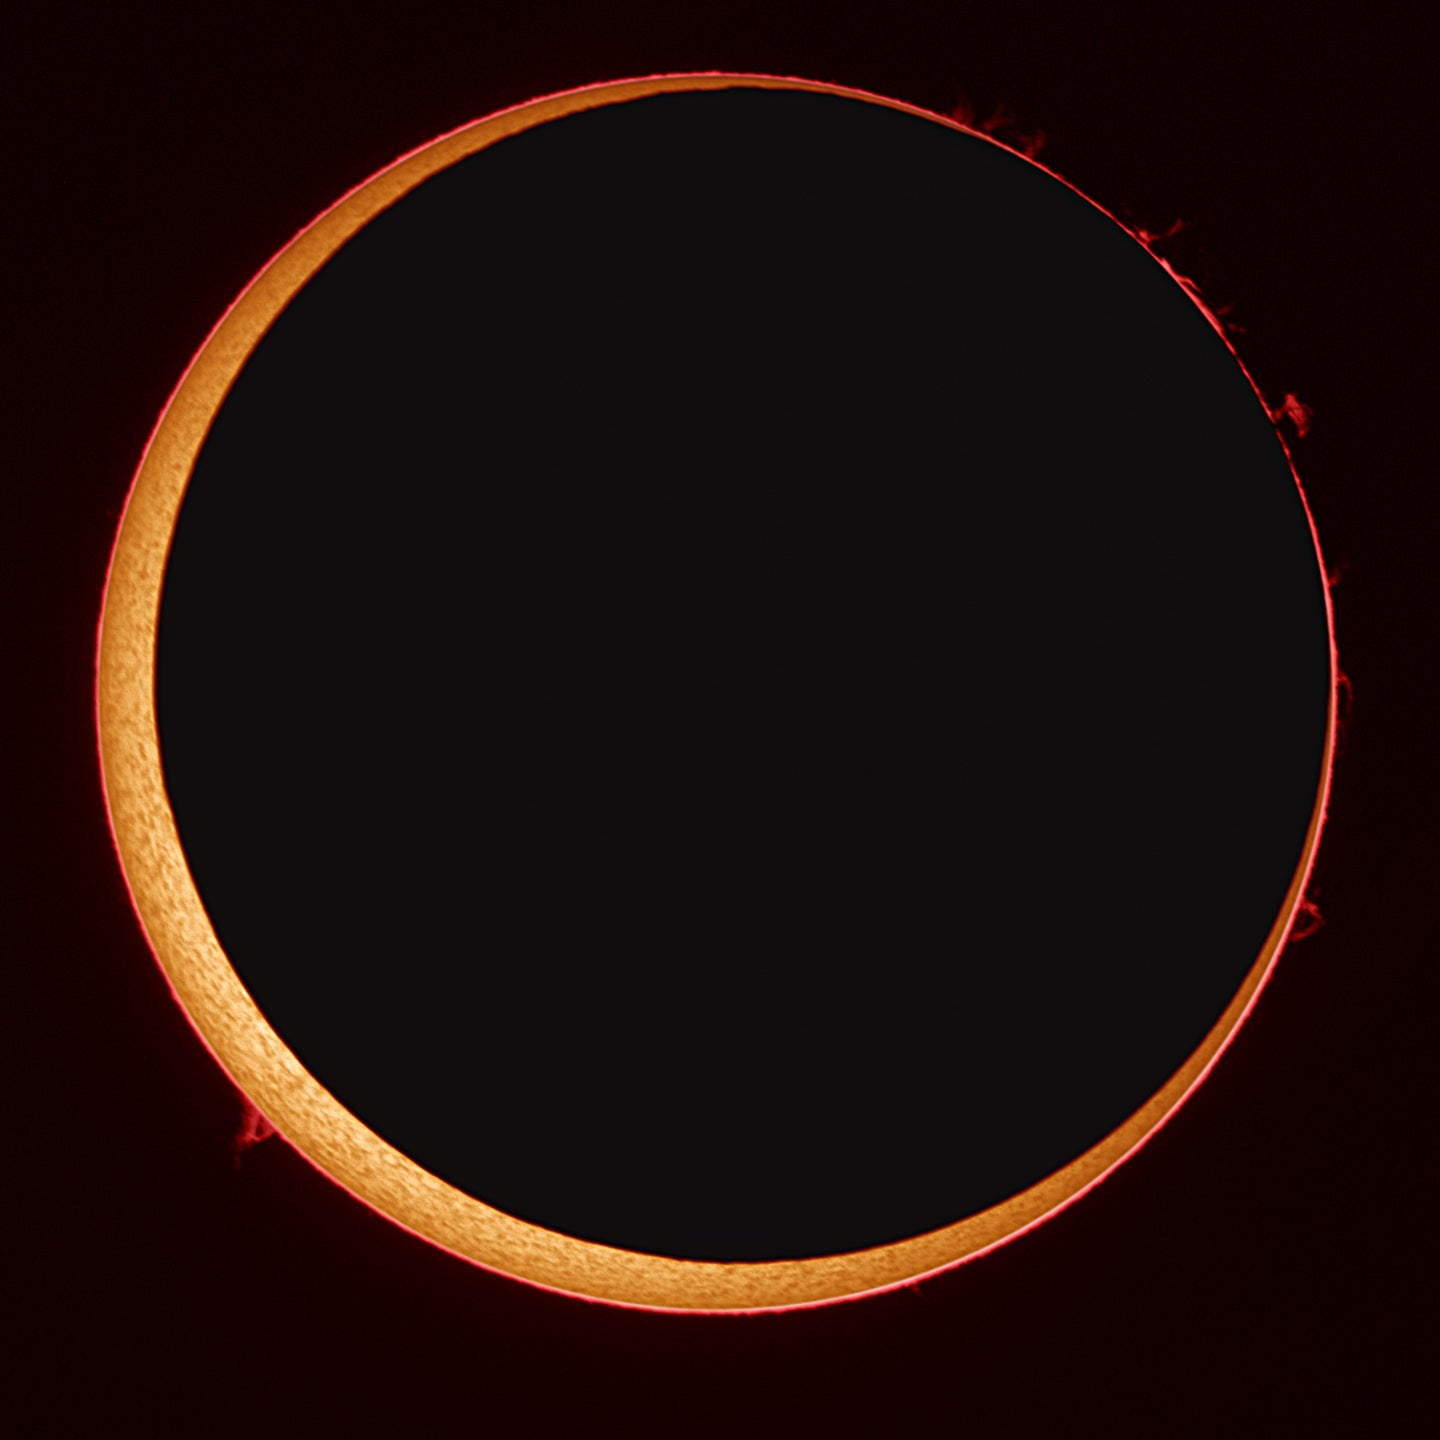 A thin ring of sun peek out behind the dark shadow of the moon.